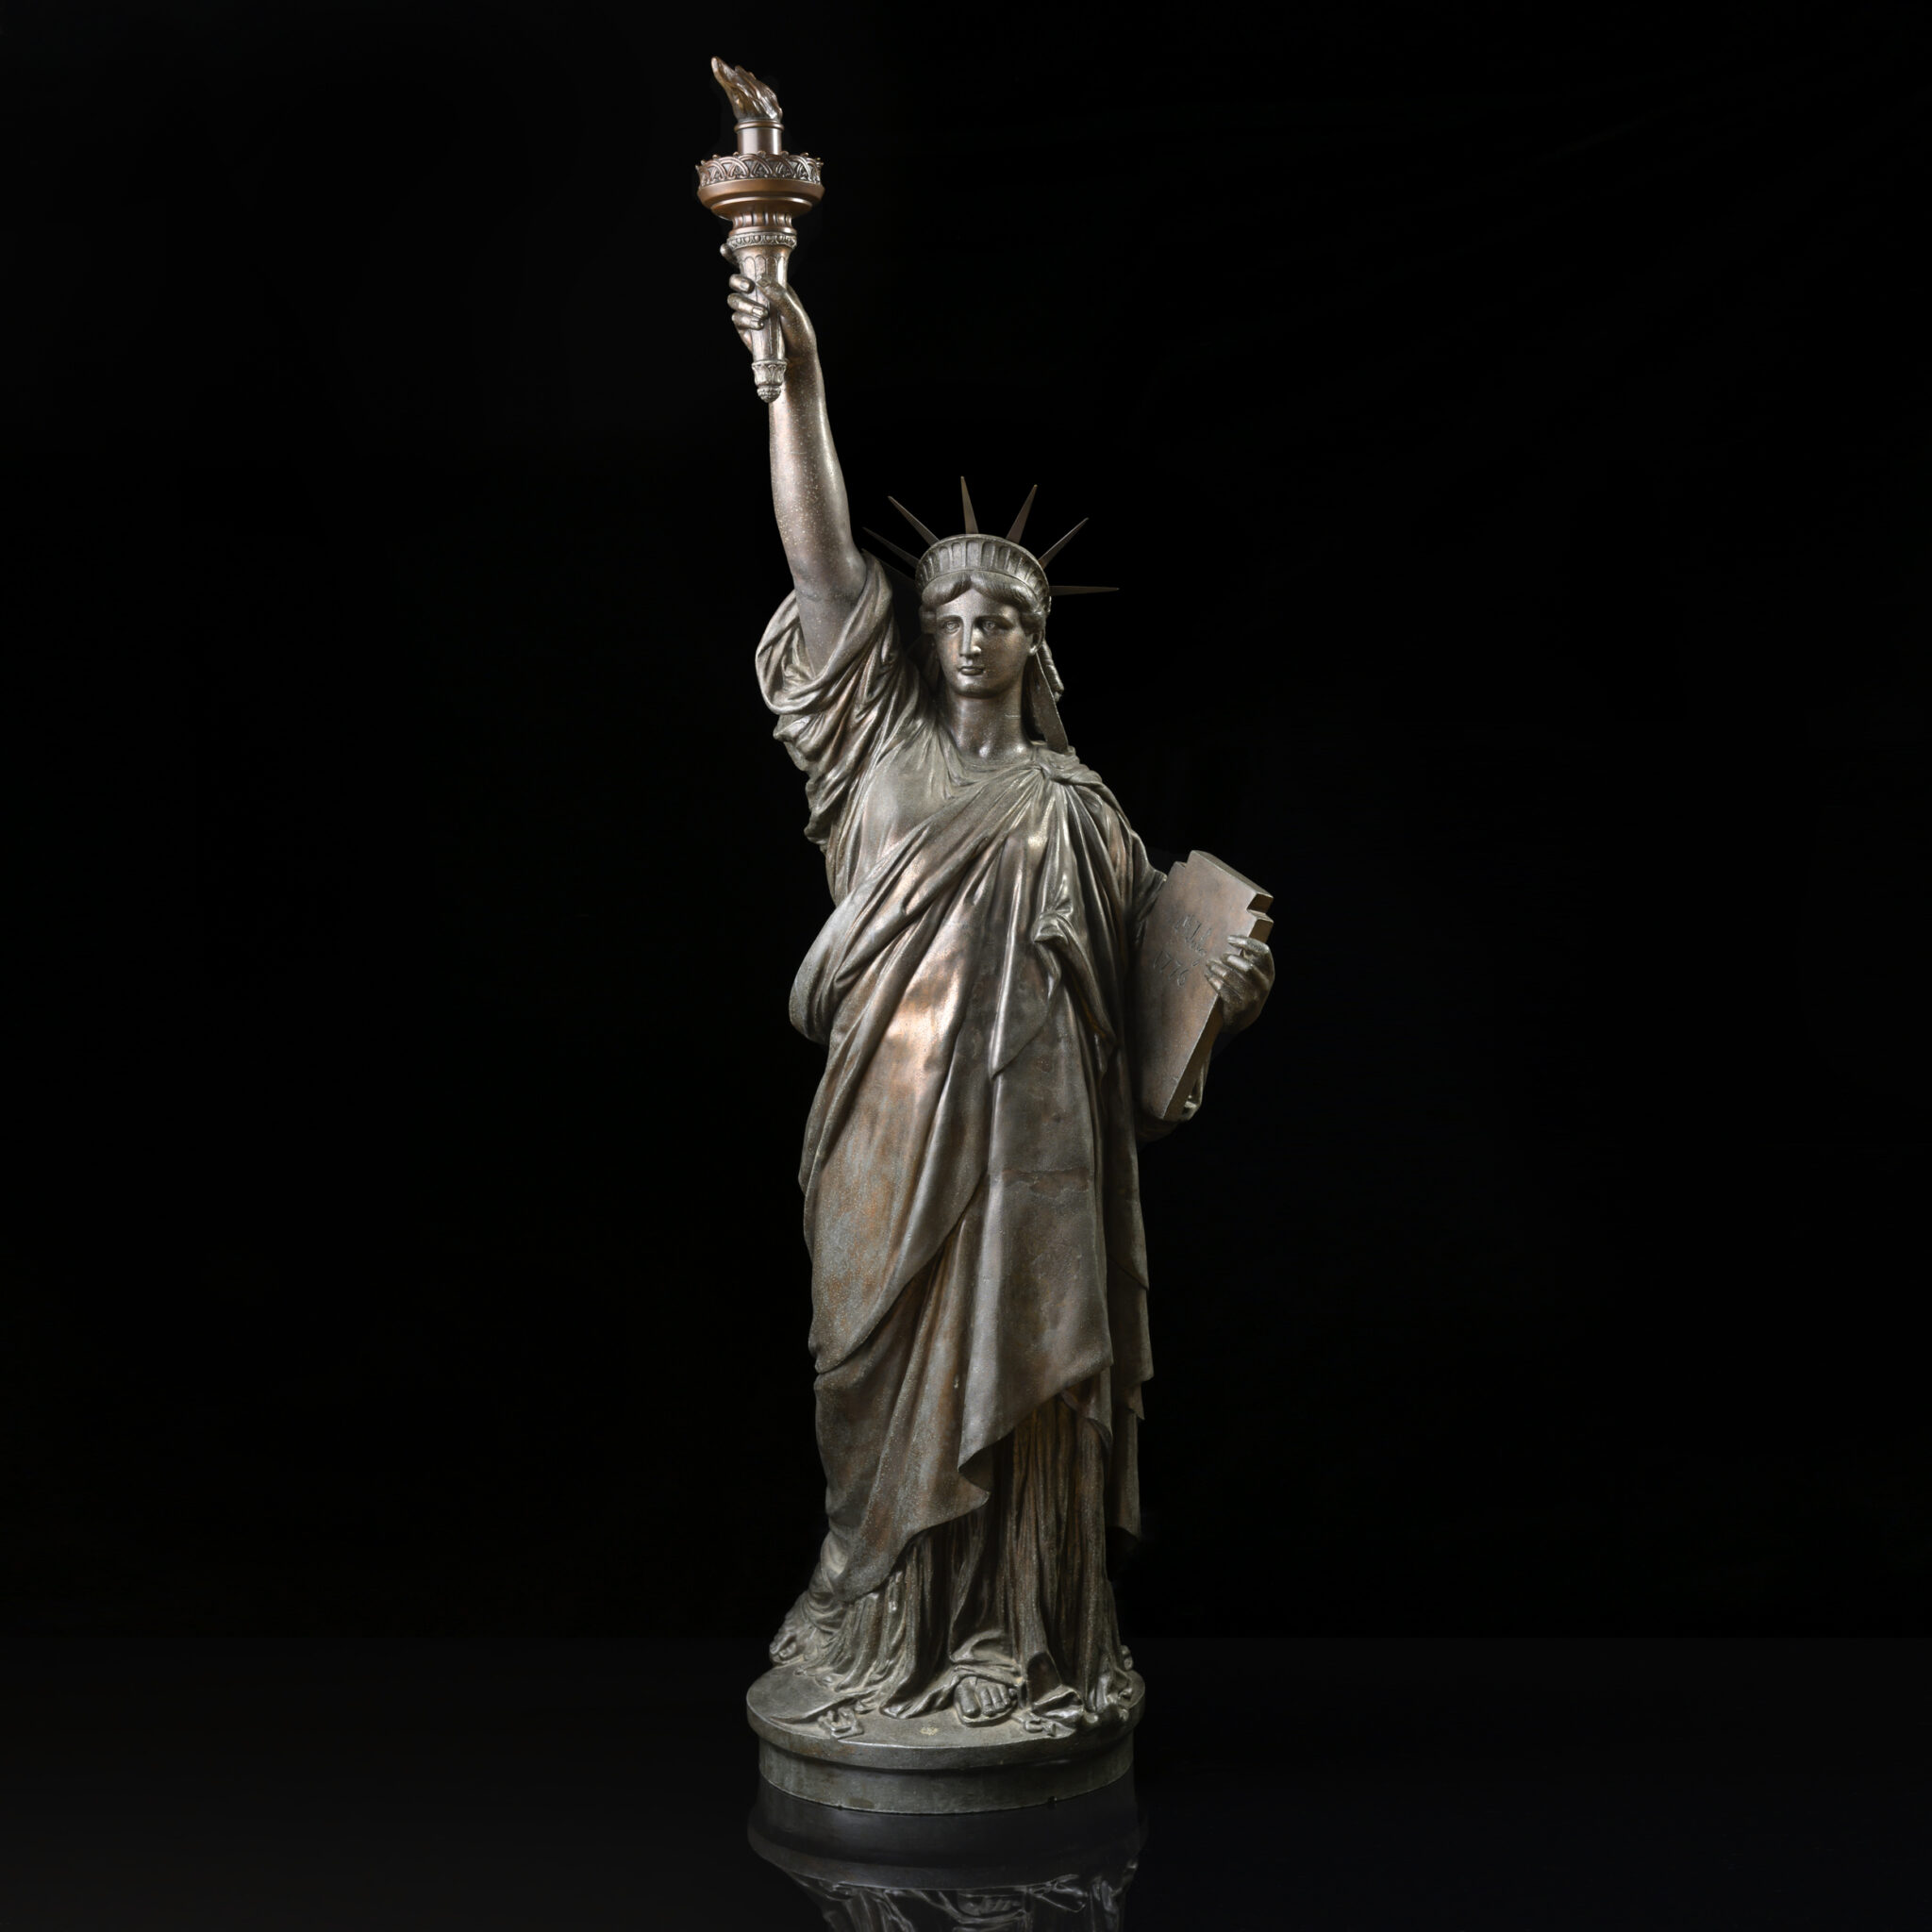 "Important Avoiron Foundry ""Statue of Liberty"" by Frederic Auguste Bartholdi (French, 1834-1904) 